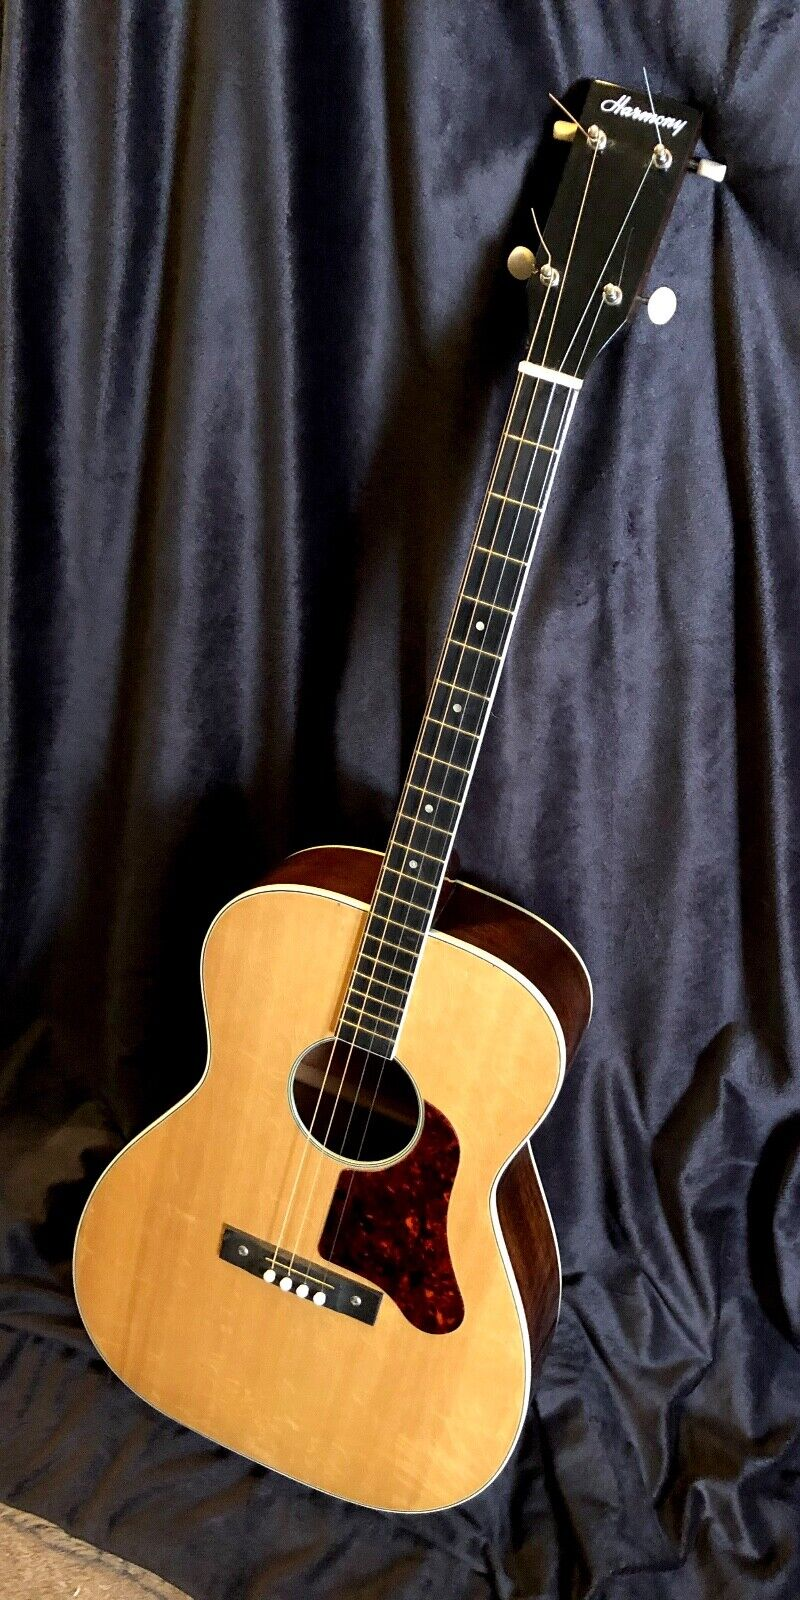 Harmony Tenor Guitar Good Condition Serial 425H1201 W Original Case - $350.00